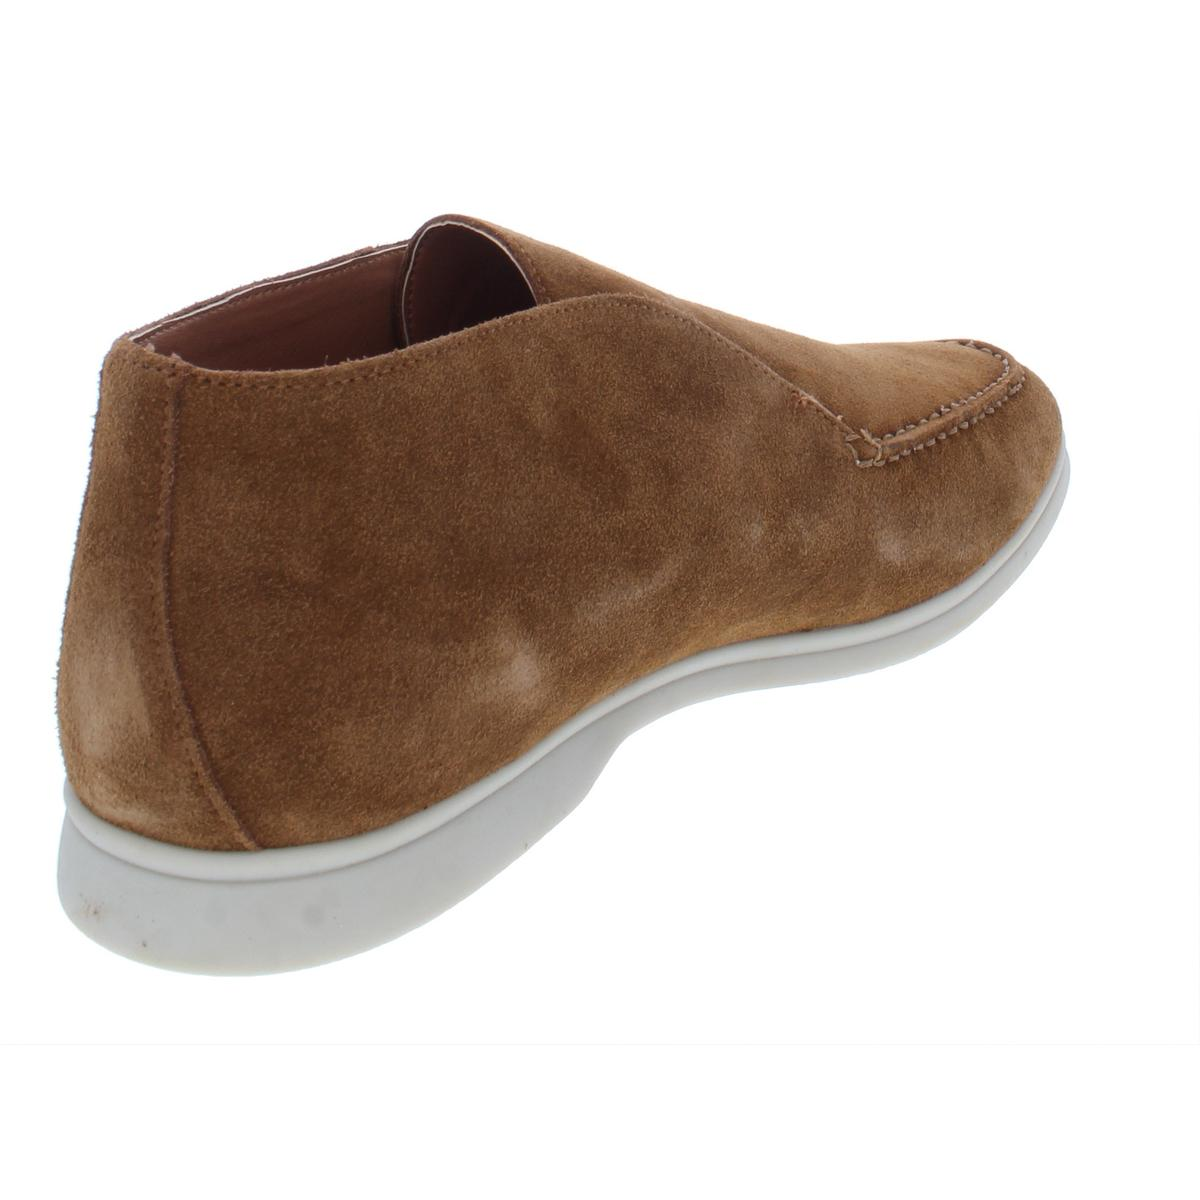 Steve-Madden-Men-039-s-Lost-Suede-Dress-Chukka-Ankle-Boots-Shoes thumbnail 6